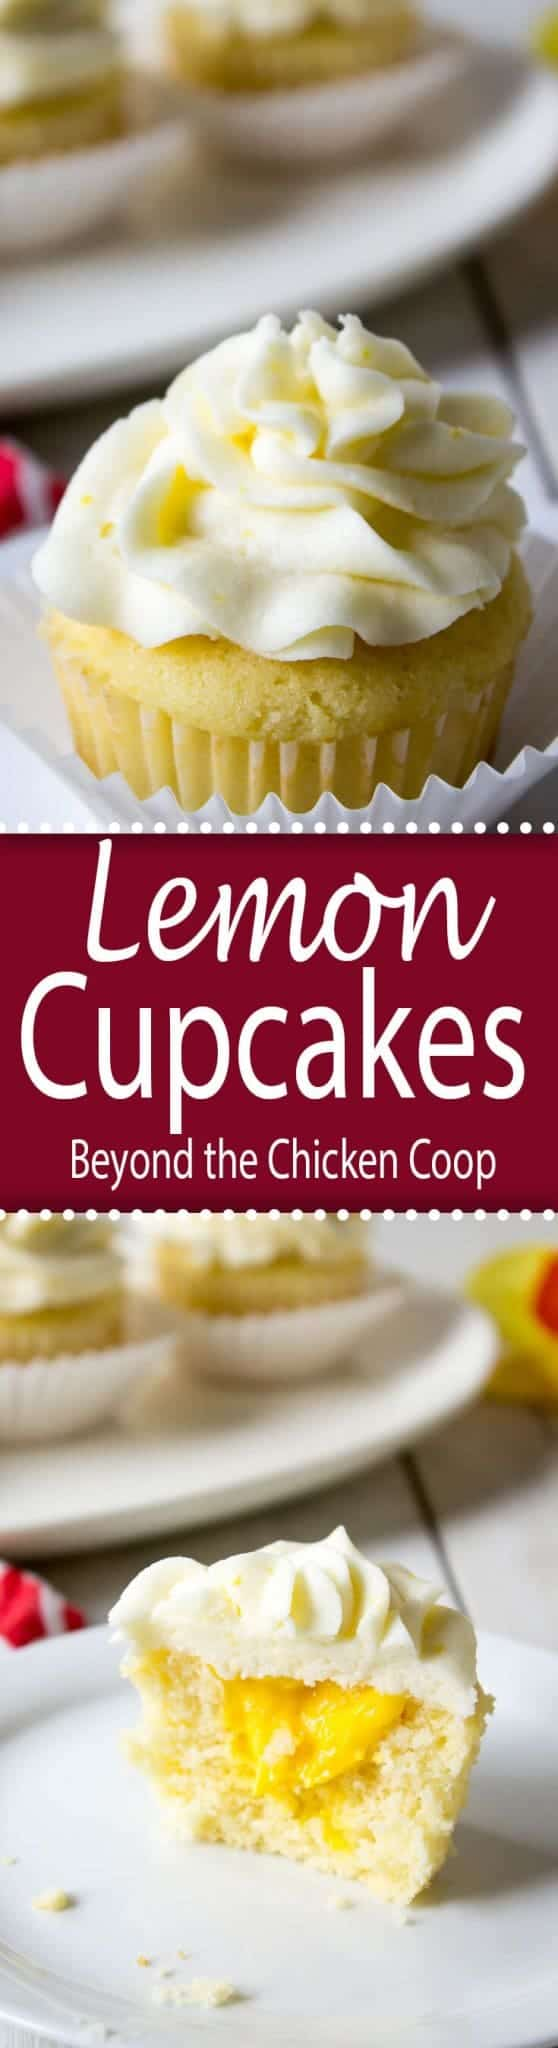 Lemon cupcakes filled with lemon curd and topped with lemon buttercream.